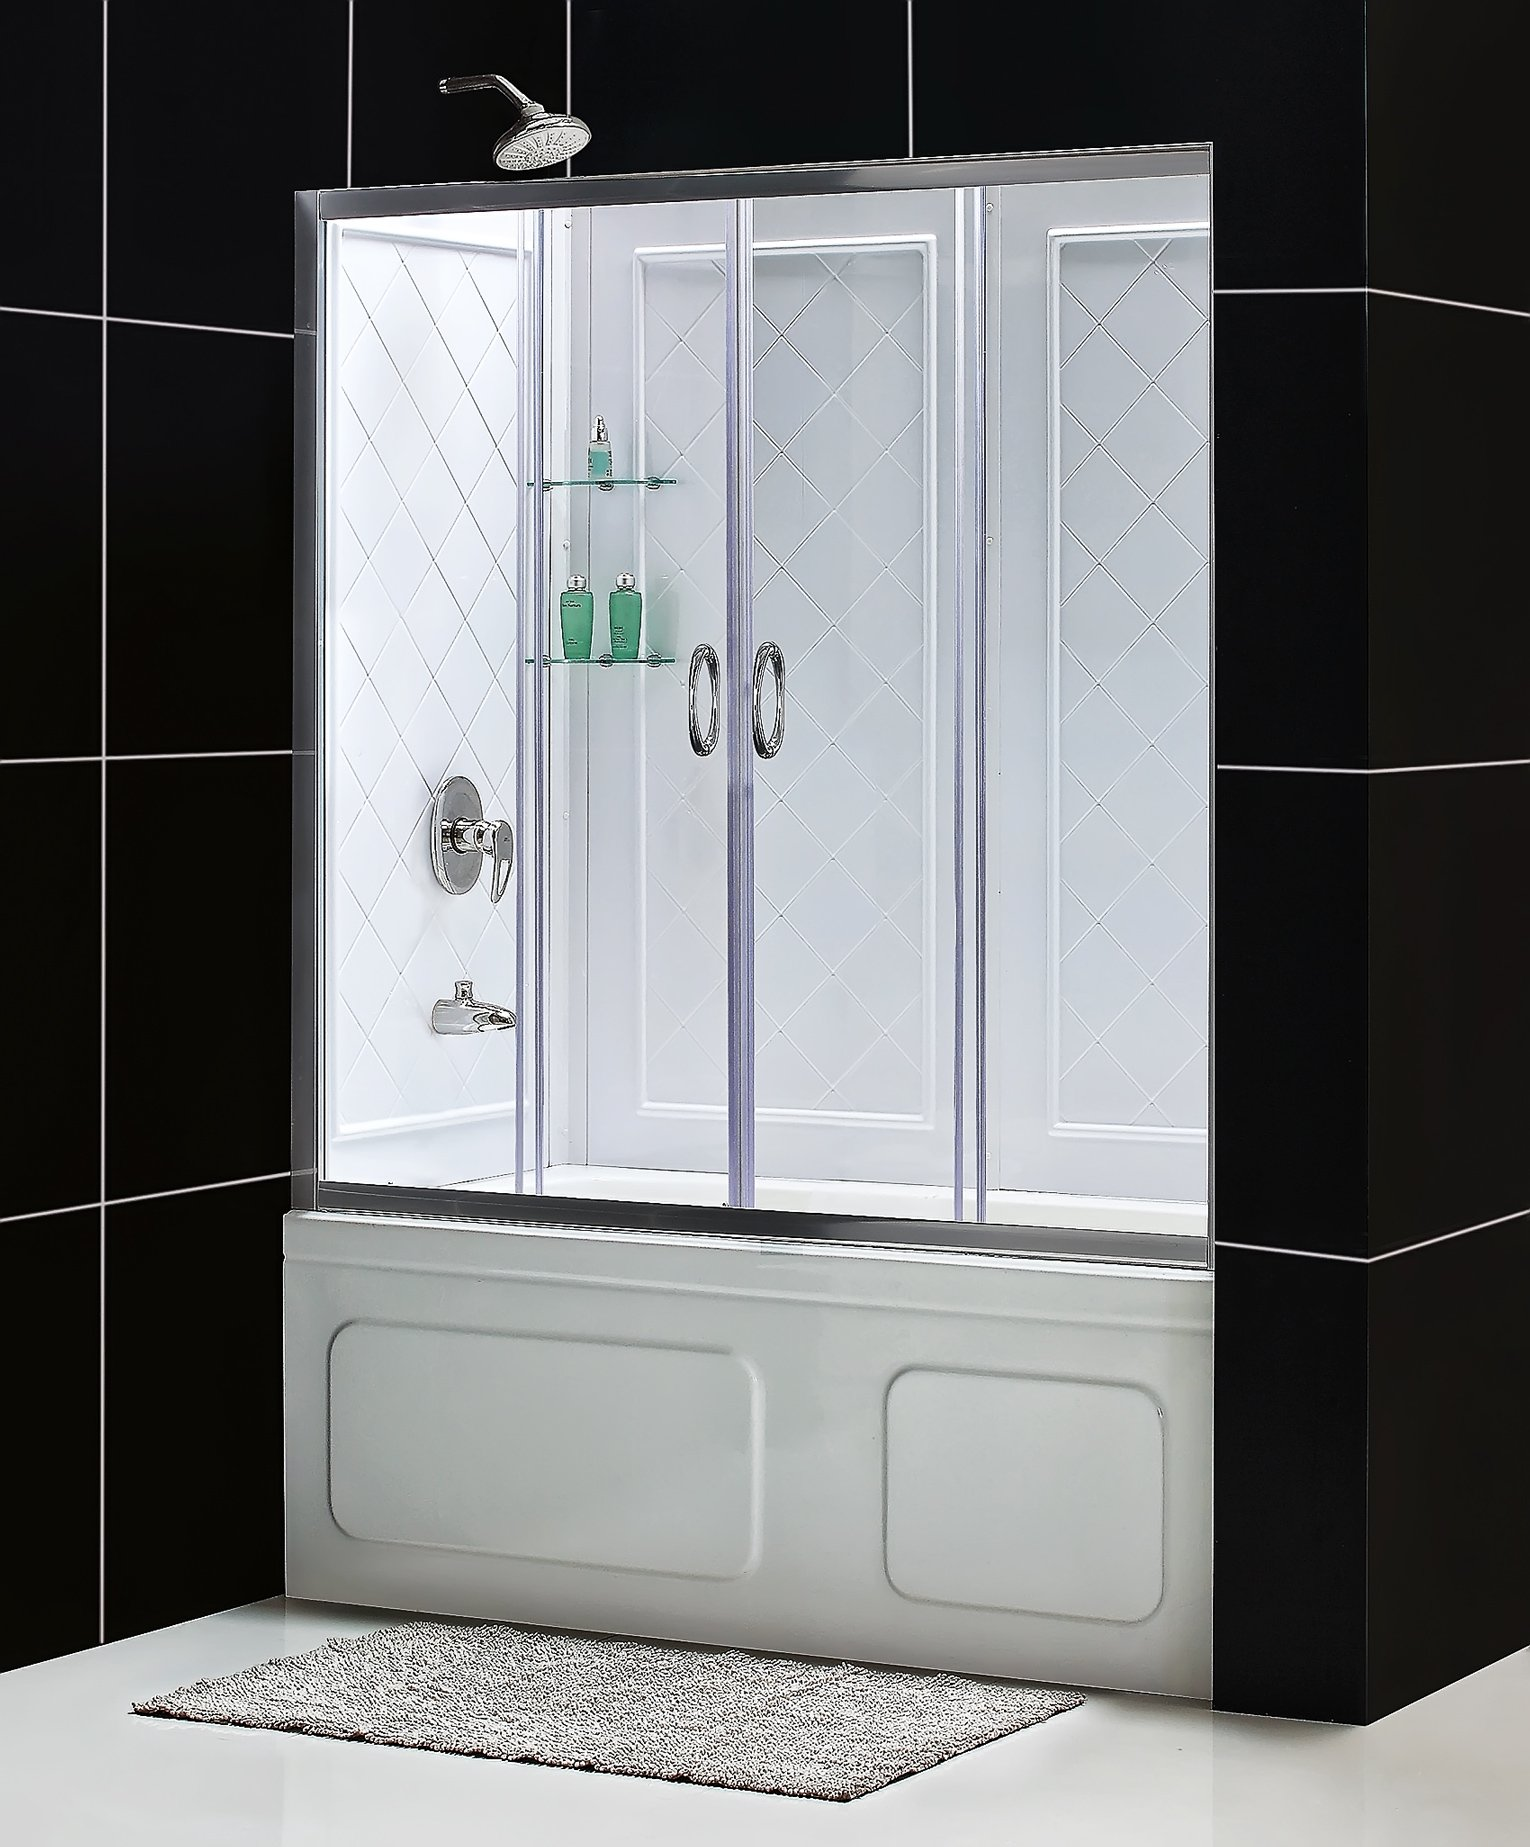 DreamLine Visions 28-32 in. D x 56-60 in. W Kit, with Sliding Tub Door in Brushed Nickel and White Acrylic Backwalls